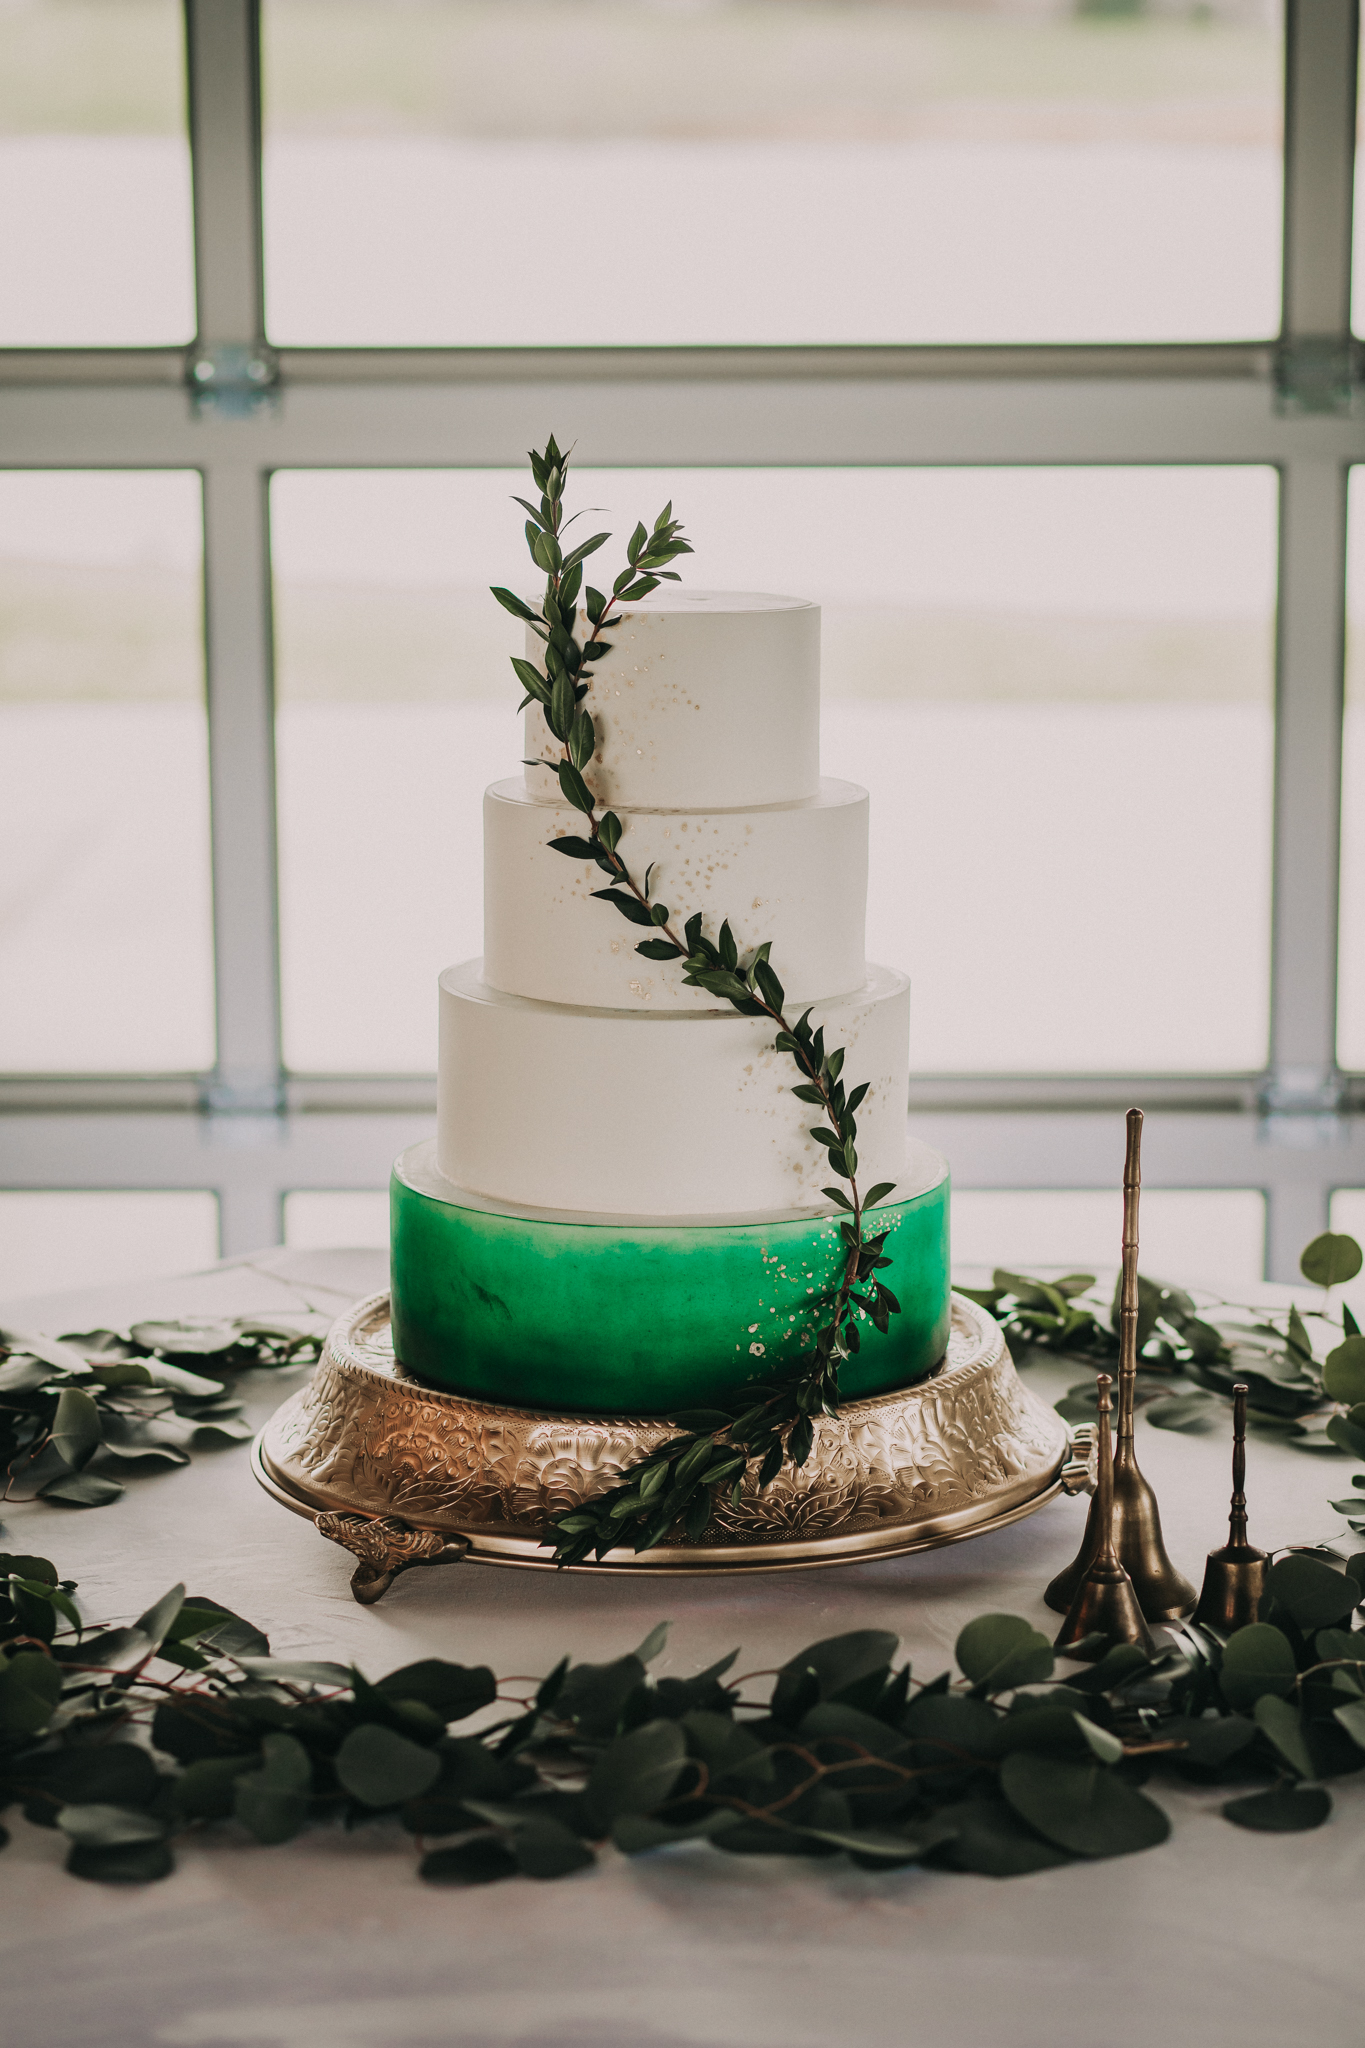 Greenery wedding cake design: Shades of Green Legacy Styled Shoot by Music City Events and Billie-Shaye Style featured on Nashville Bride Guide